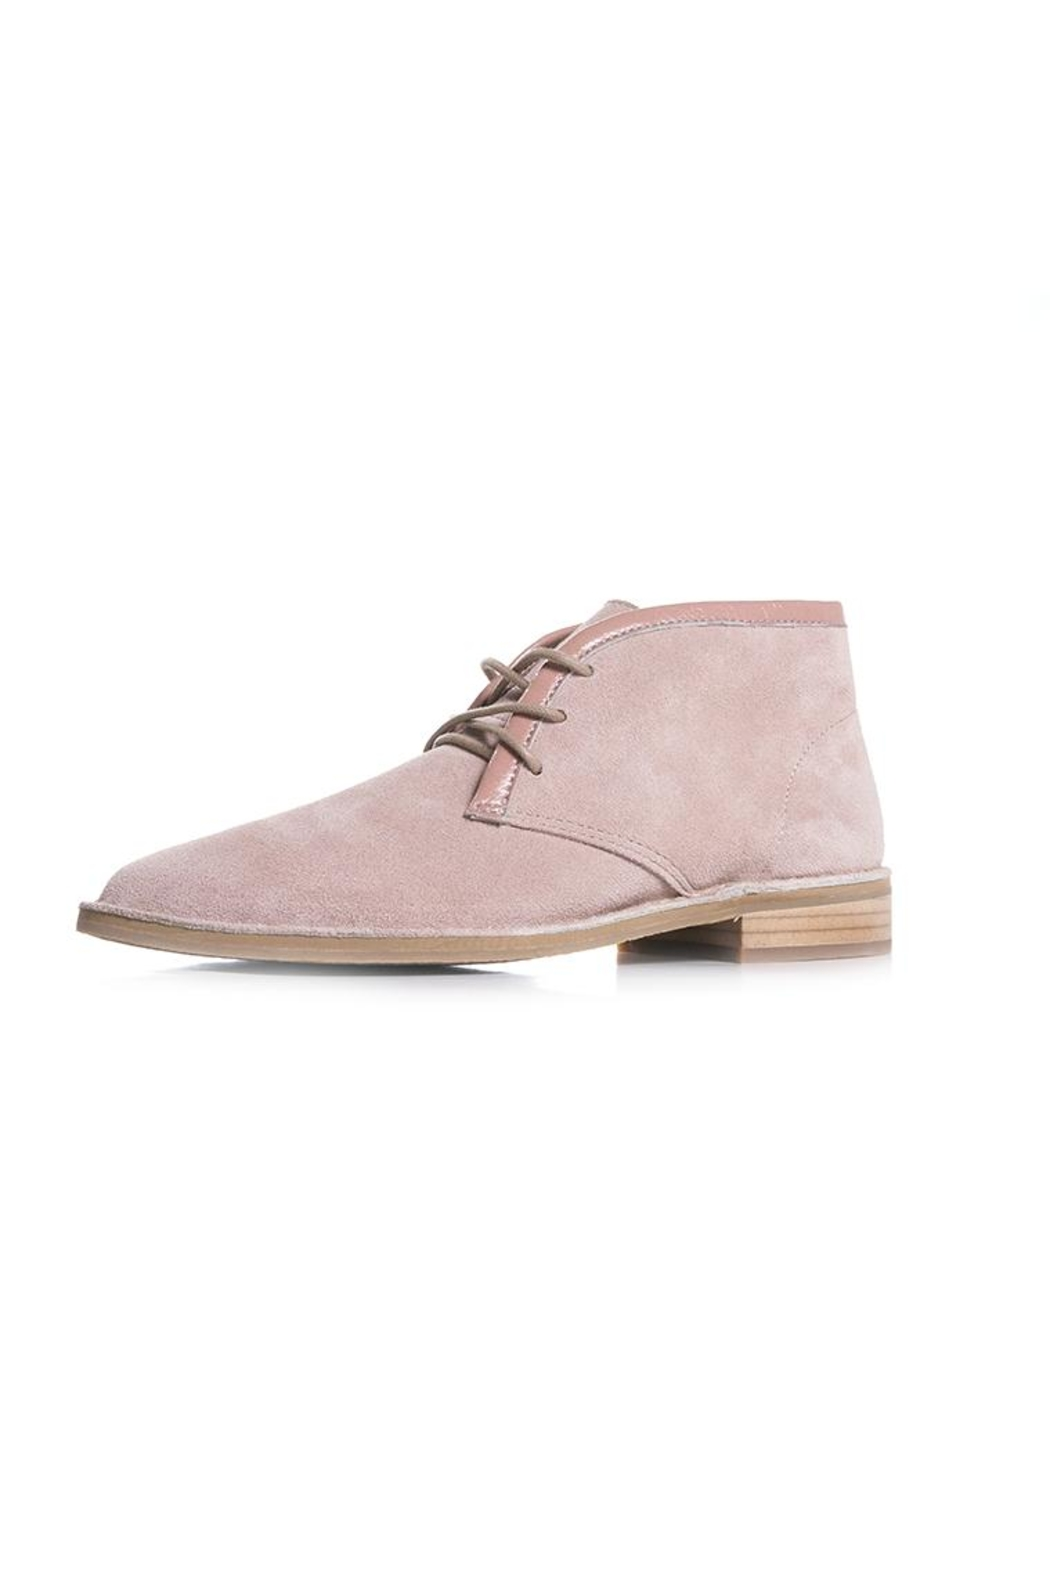 Kelsi Dagger Brooklyn Suede Boots - Front Full Image